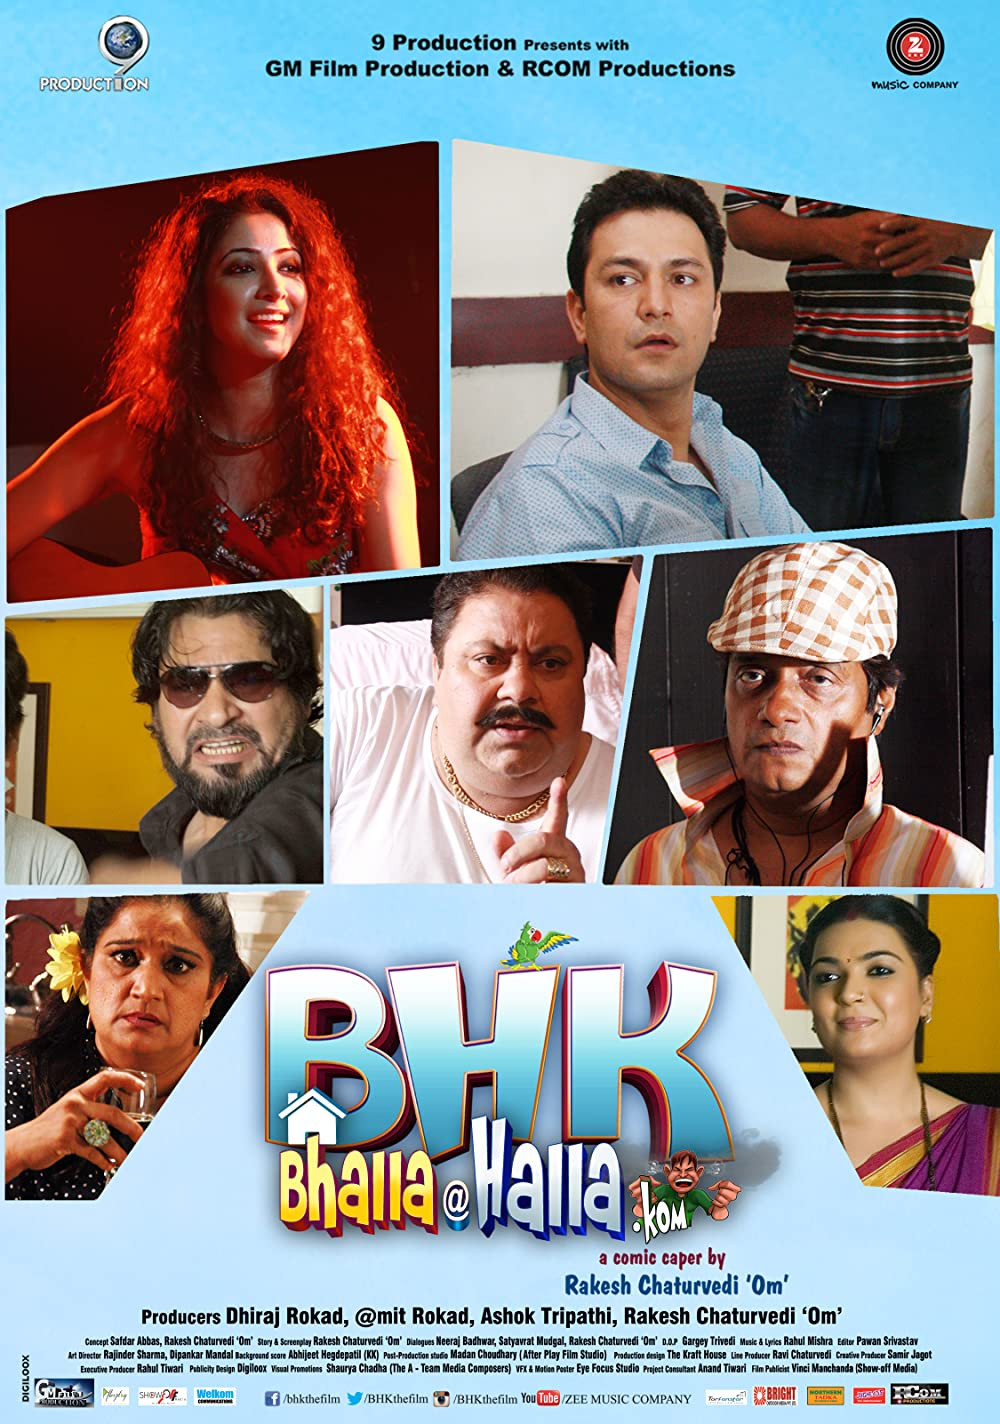 BHK Bhalla@Halla.Kom 2016 Hindi Full Movie 370MB HDRip ESub Download